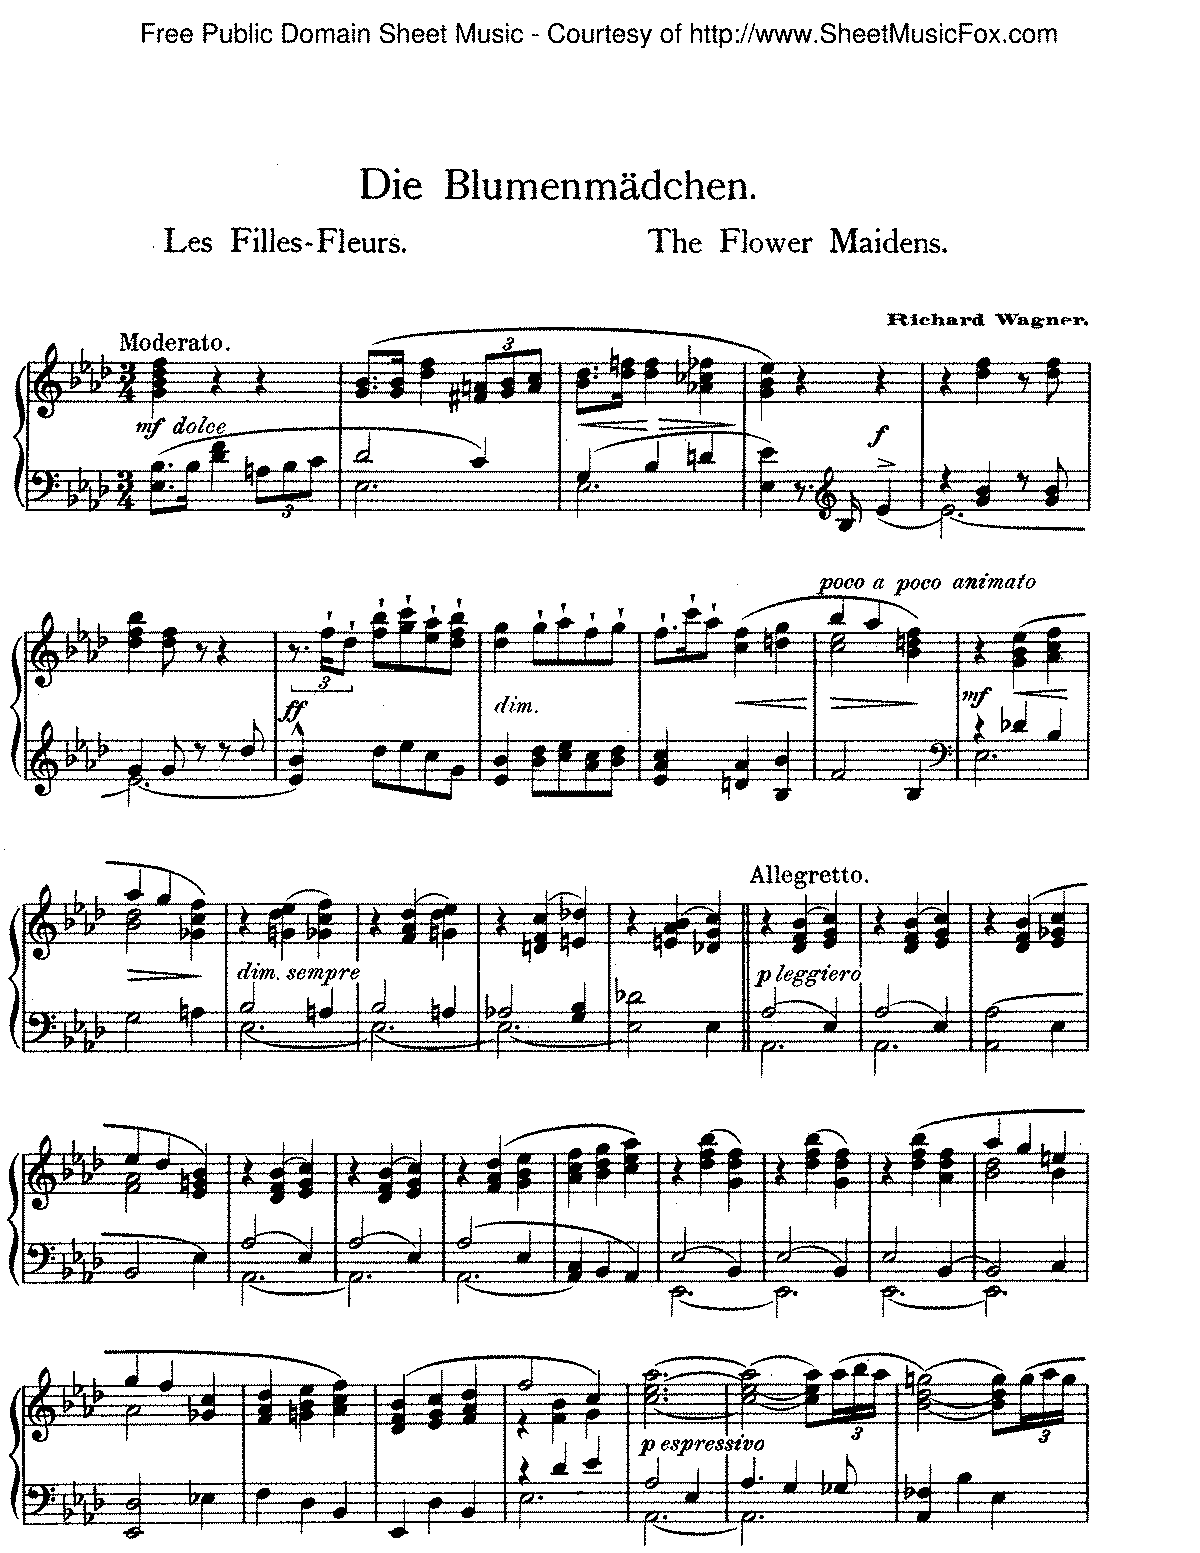 Wagner - The Flower Maidens.pdf